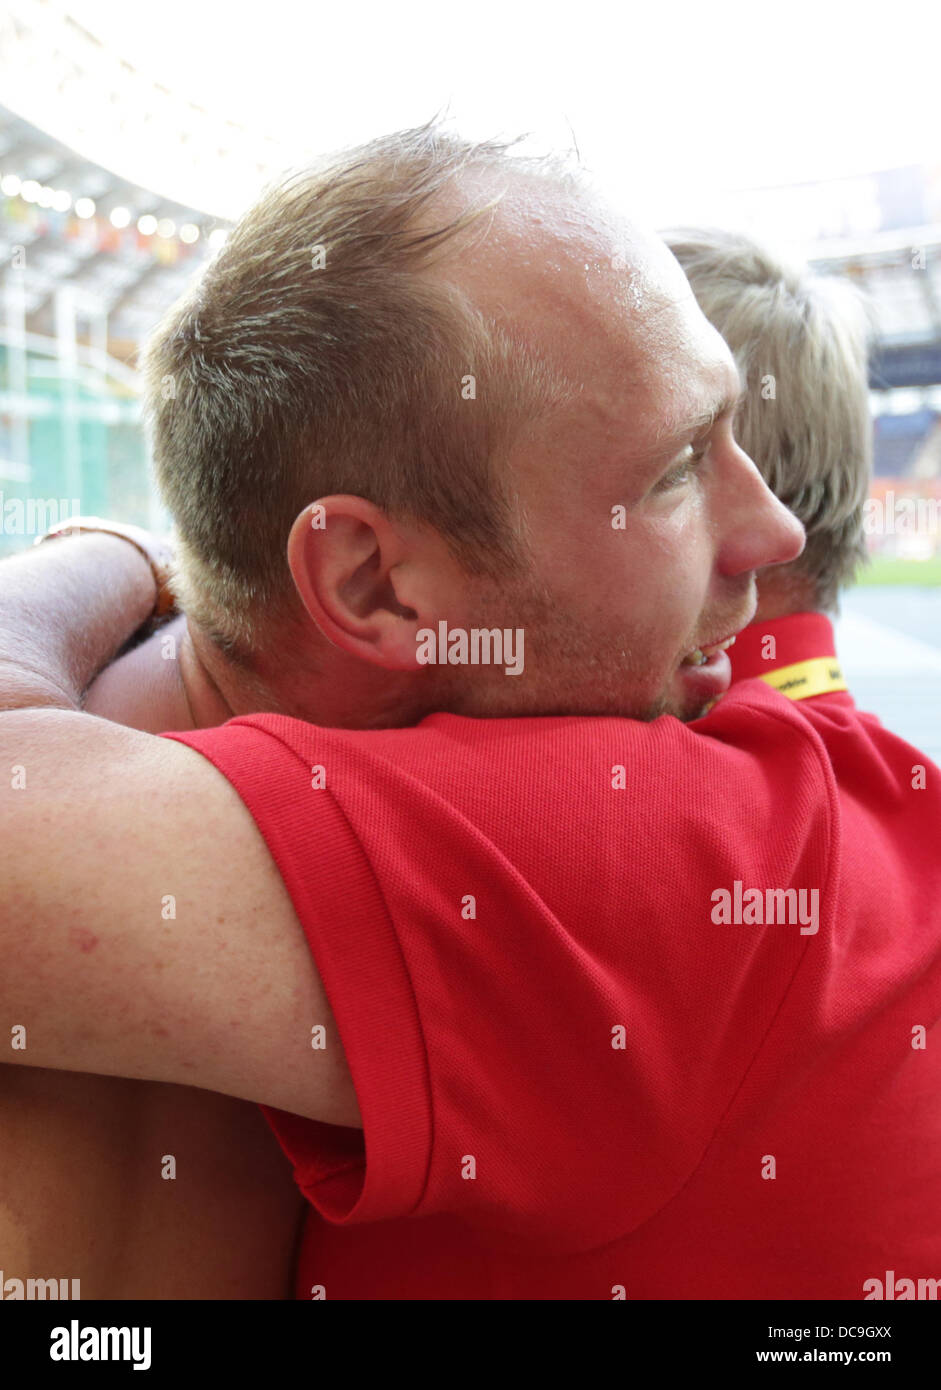 Moscow, Russia. 13th Aug, 2013. Germany's Robert Harting (L) celebrates with coach Robert Goldmann after winning - Stock Image